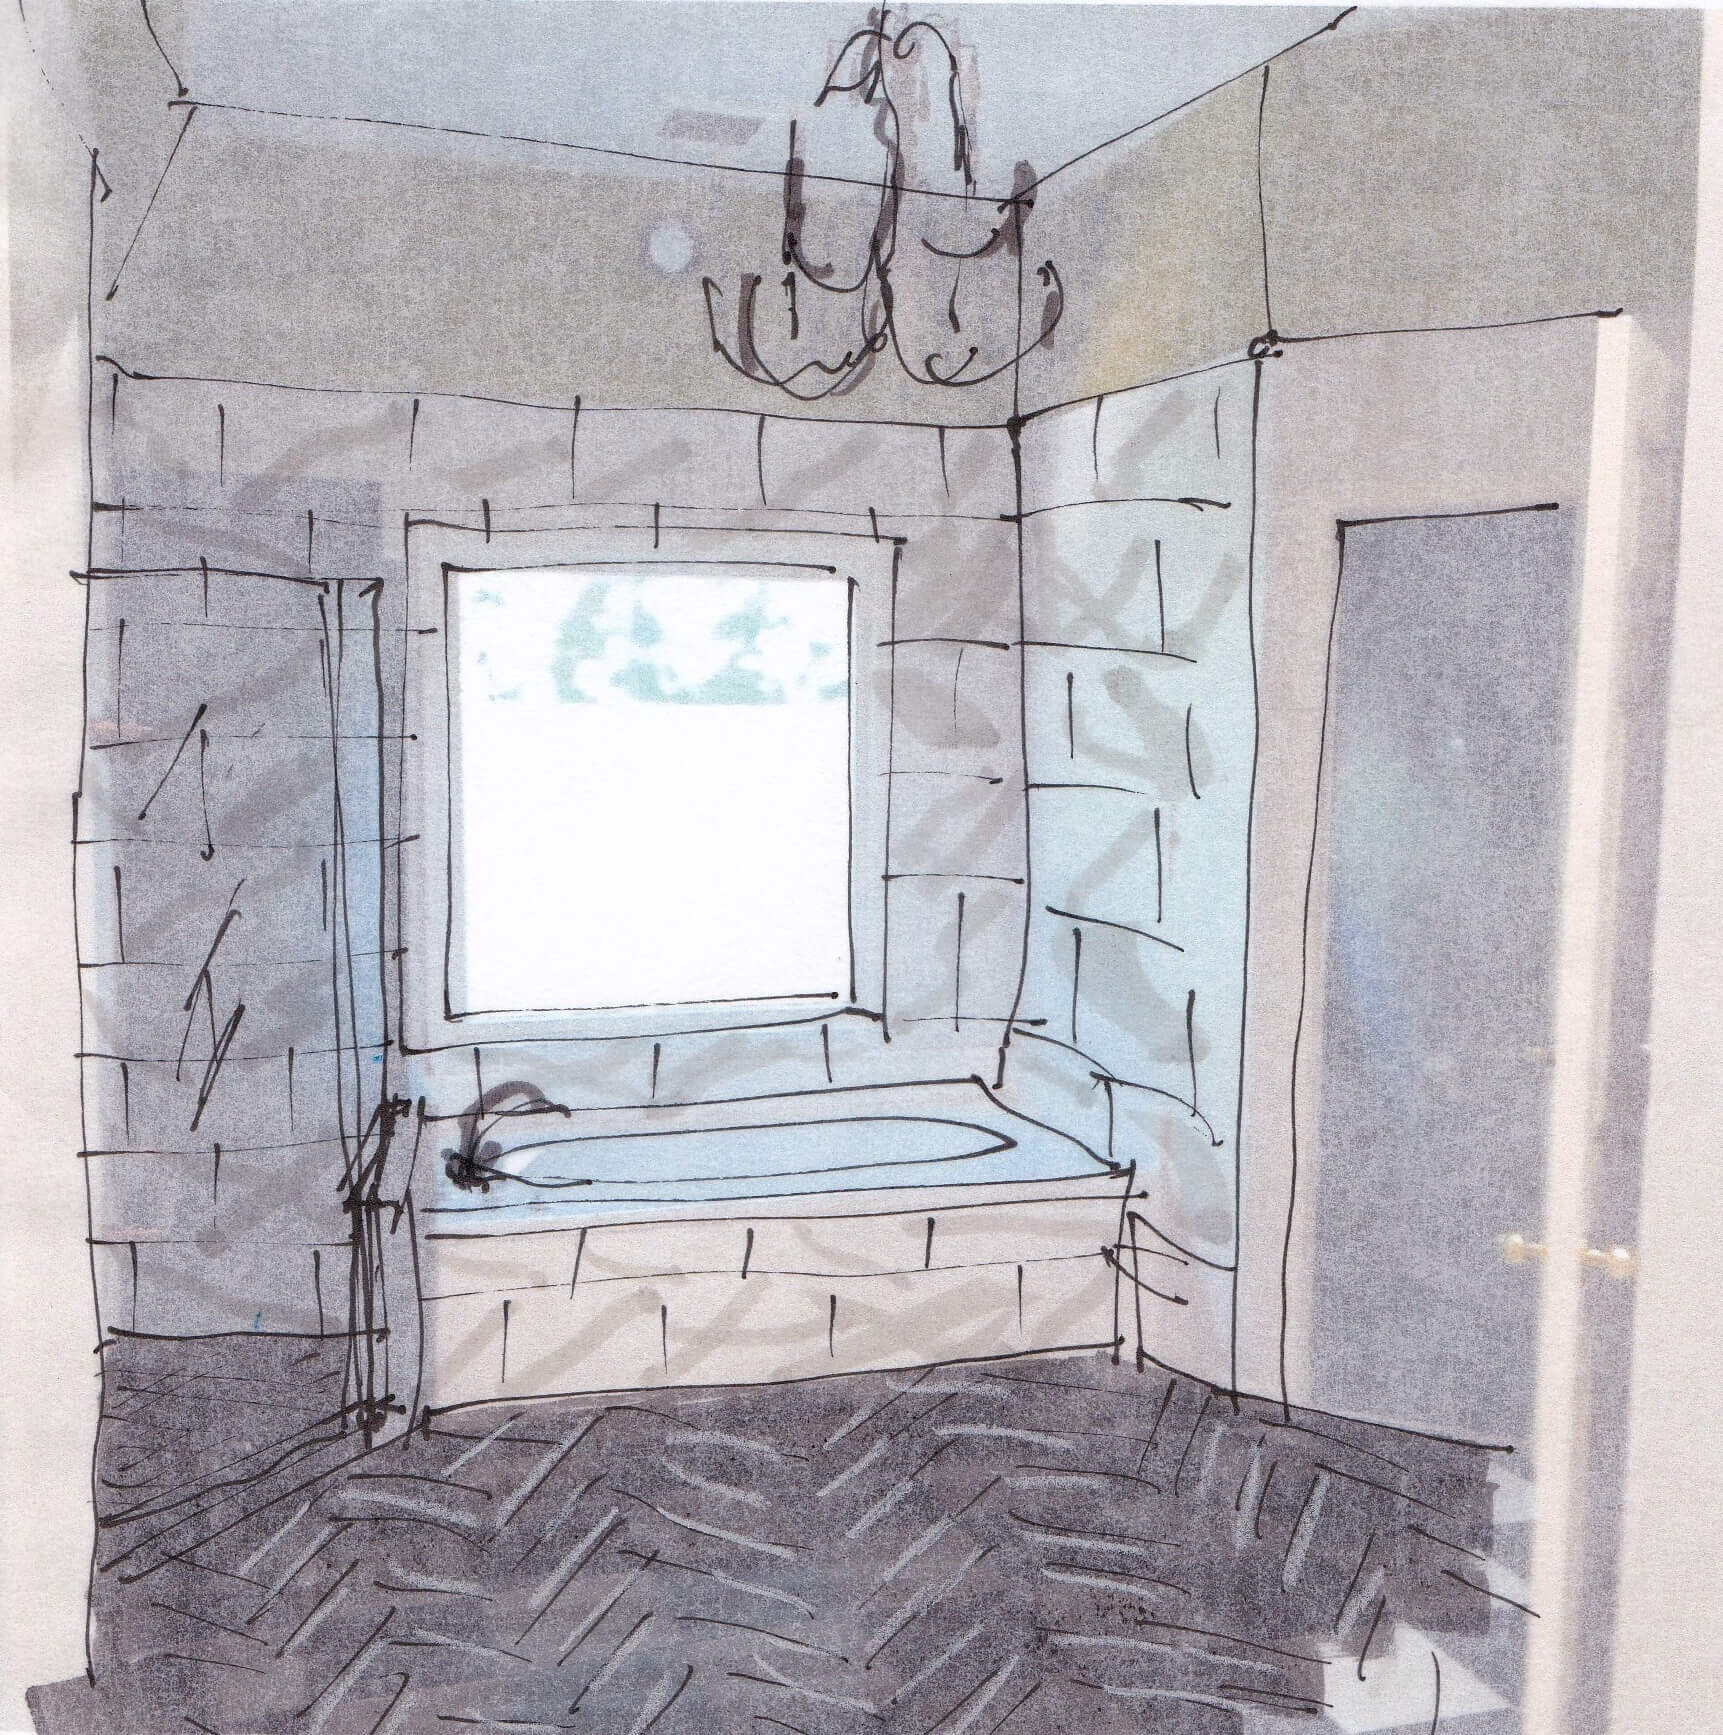 Here's what I thought would work best for the tile and installation of tile in this area of the bathroom. Covering the wall of shower and tub in the same tile and taking the floor tile into the shower stall would make for a more cohesive and intentional design. #designsketch #designconsultation #bathroomdesign #bathroomtile